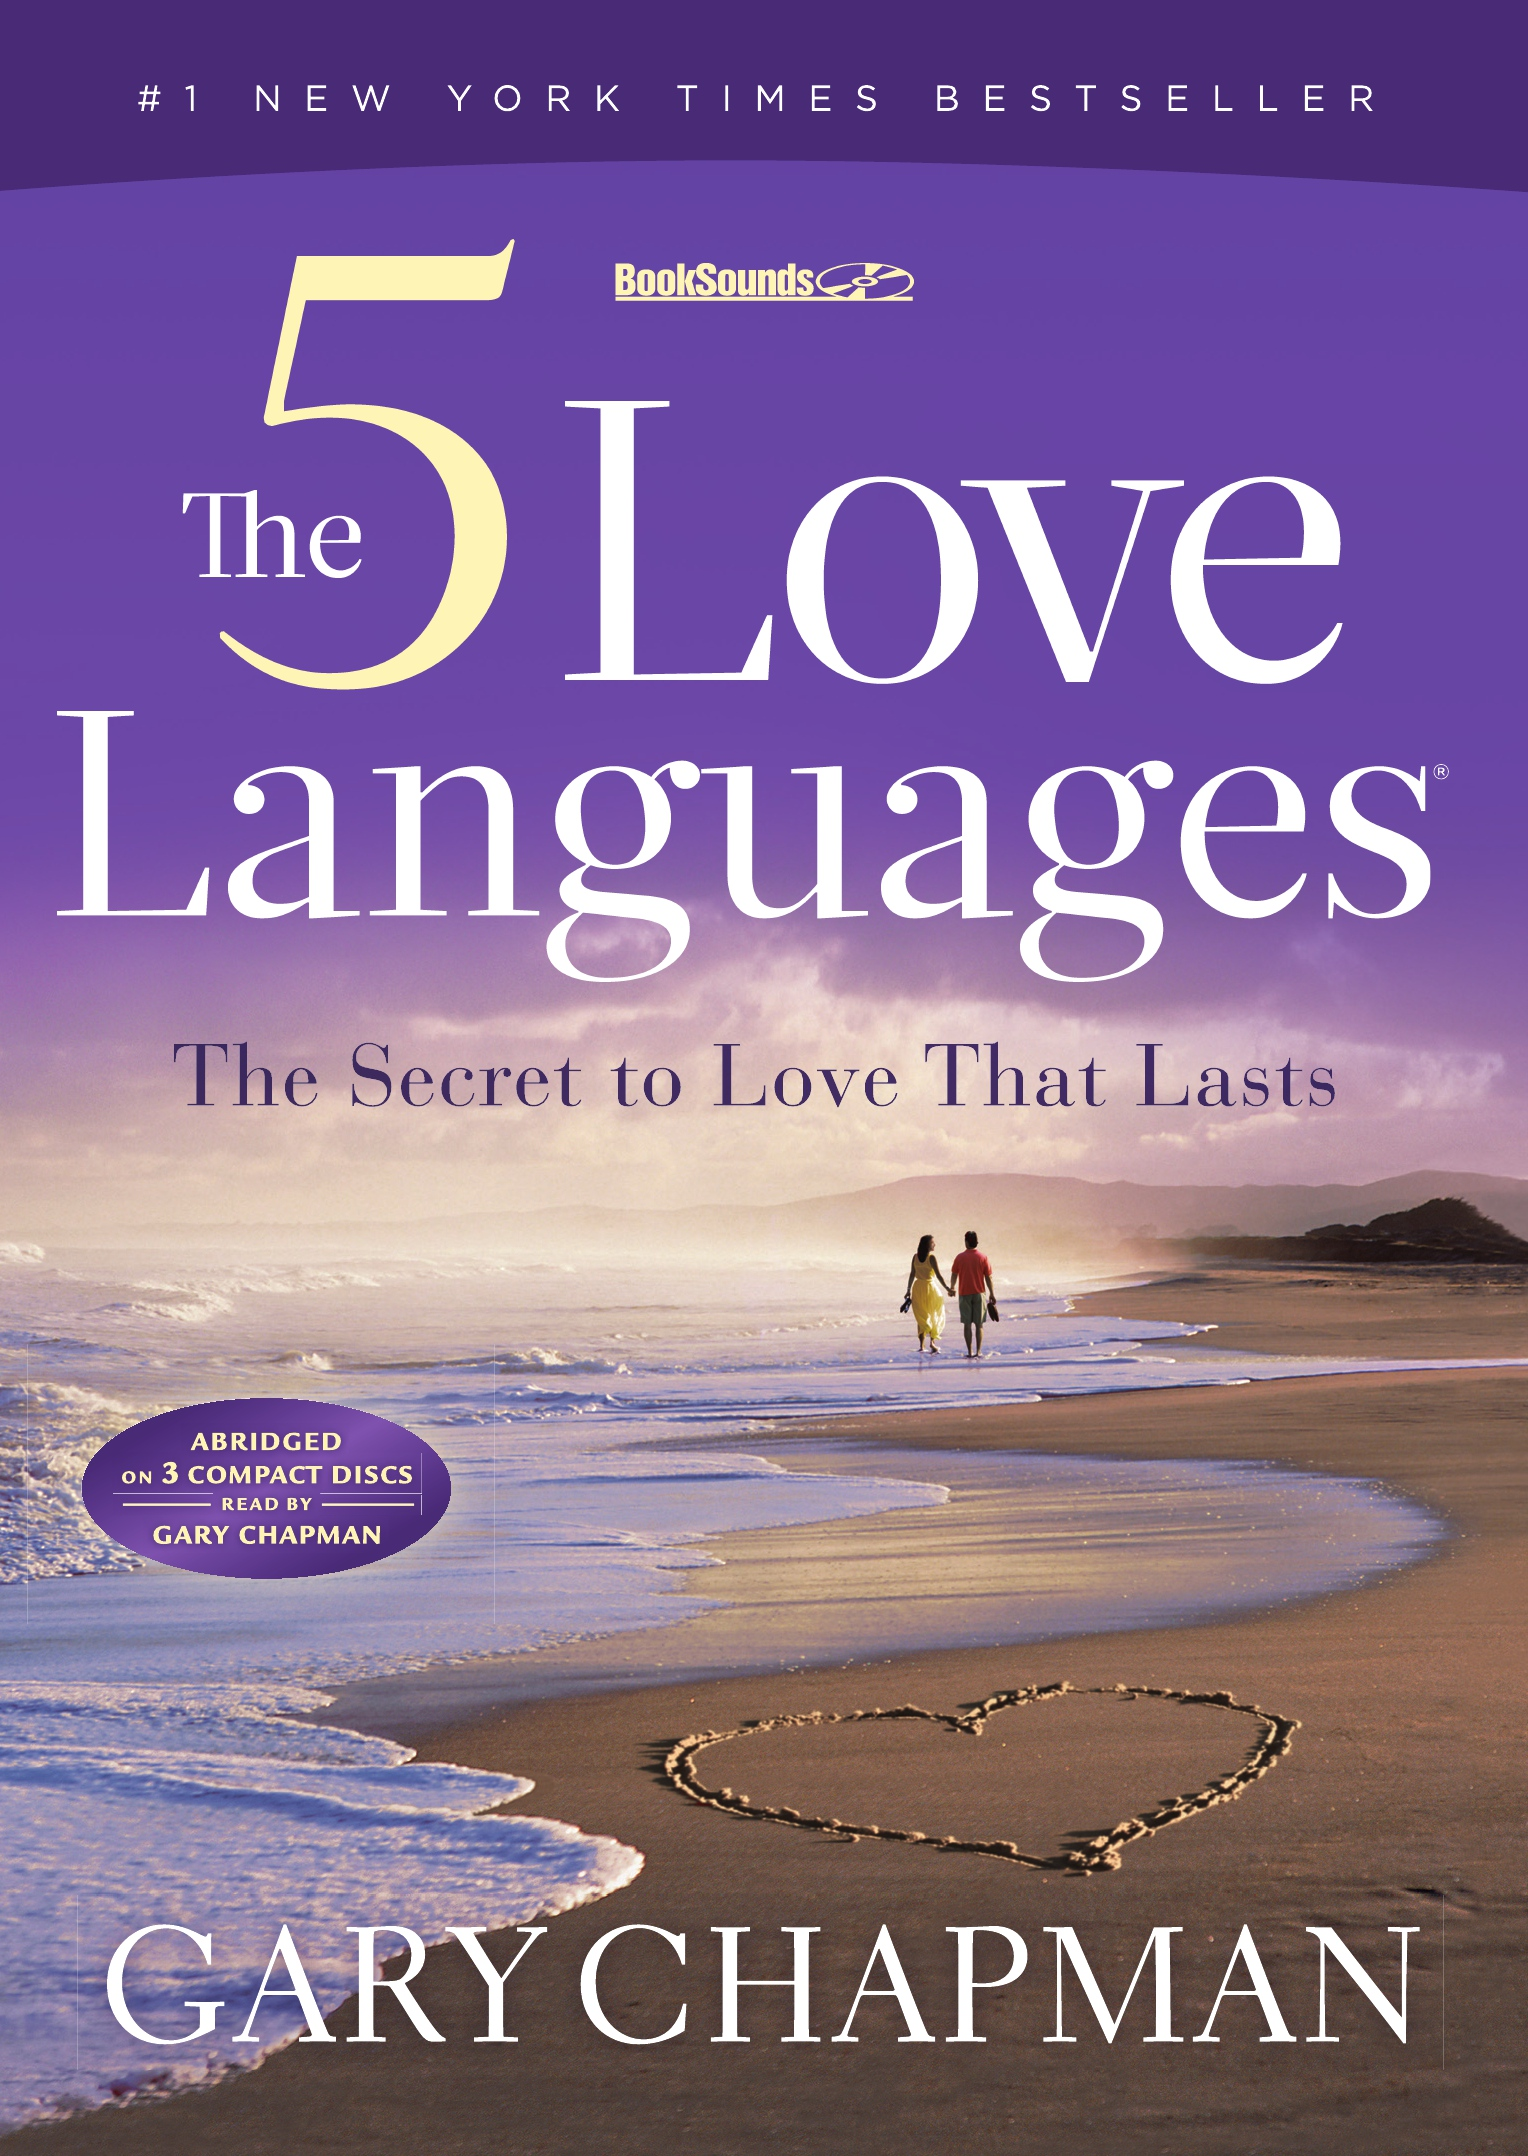 https://bondoverbks.files.wordpress.com/2013/12/5-love-languages.jpg